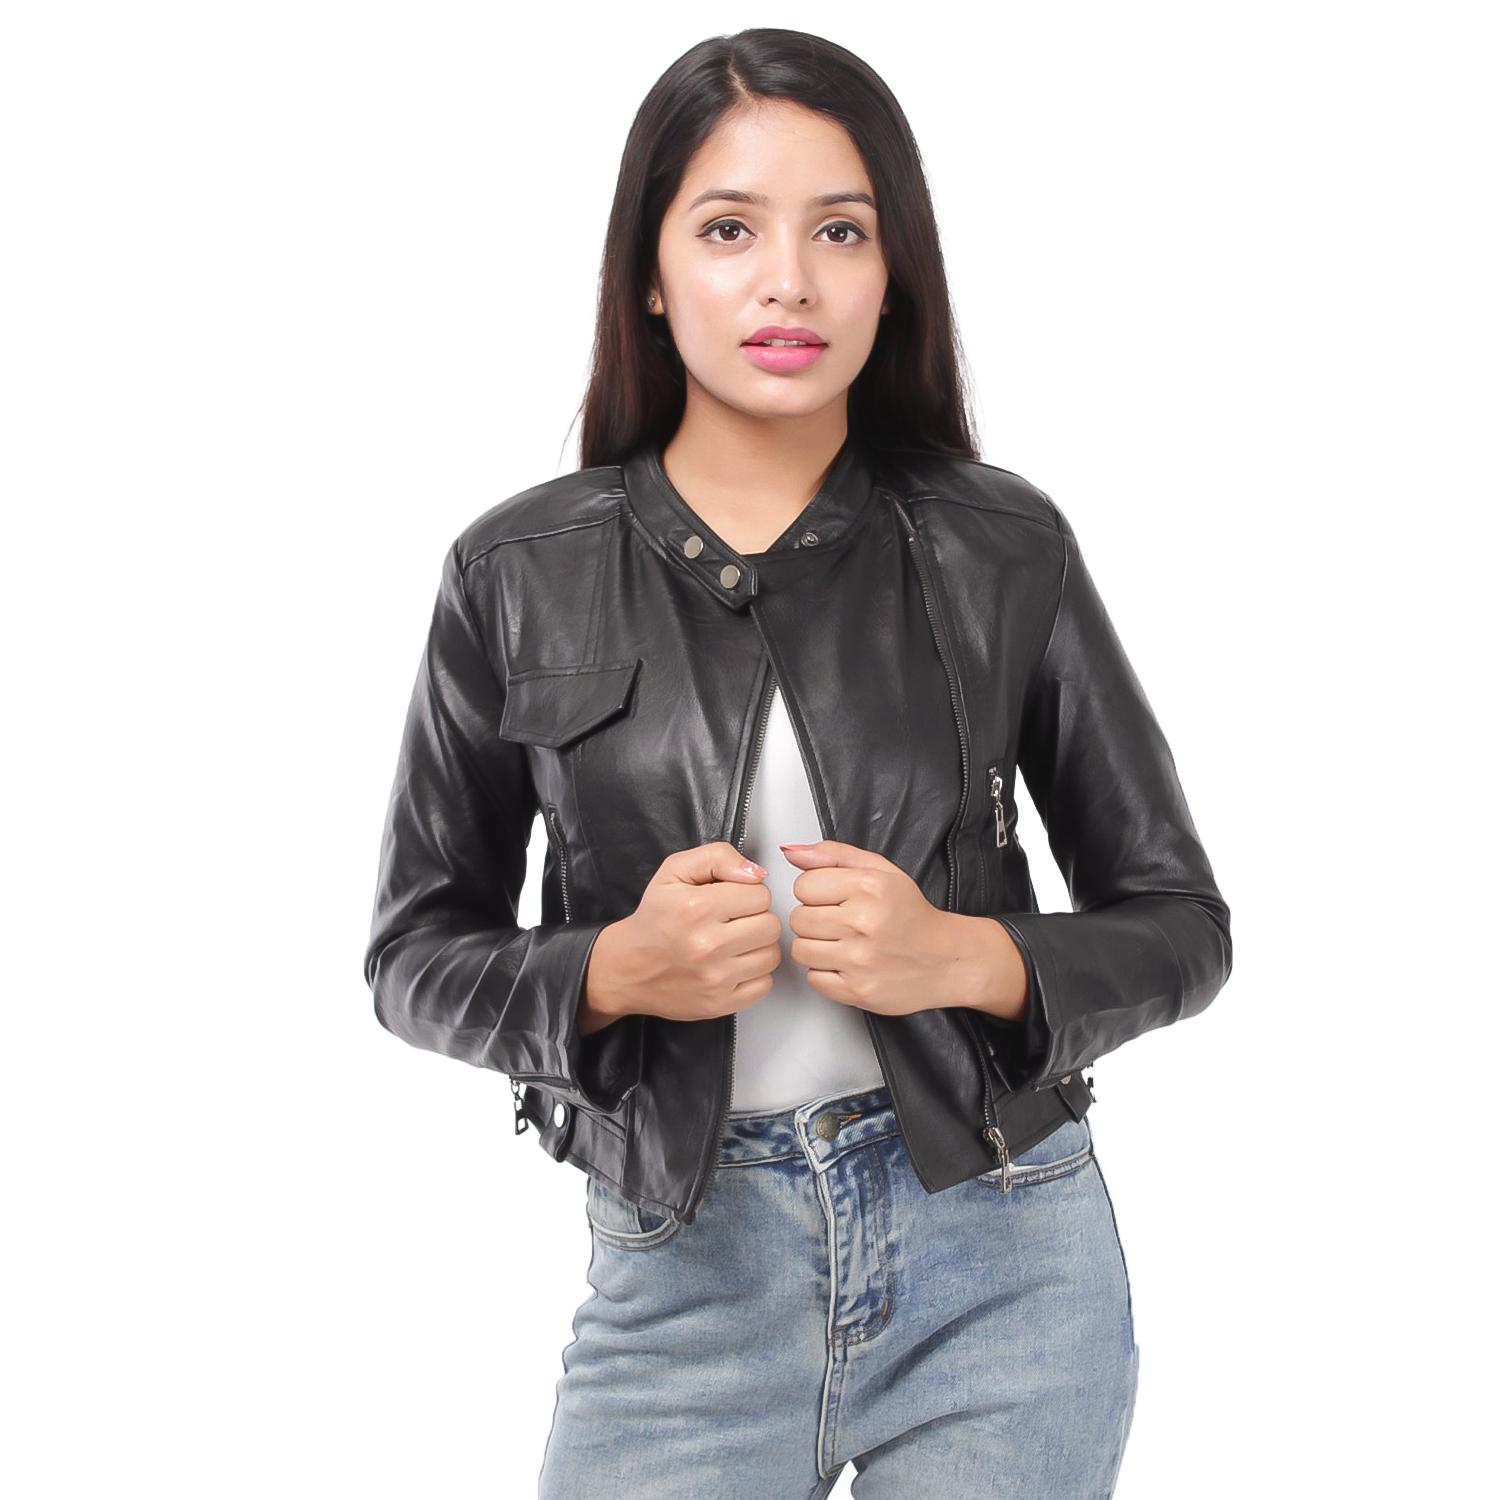 ae1ae4550aa69 Ladies Leather Jacket Price in Nepal - Buy Leather Jacket For Women ...